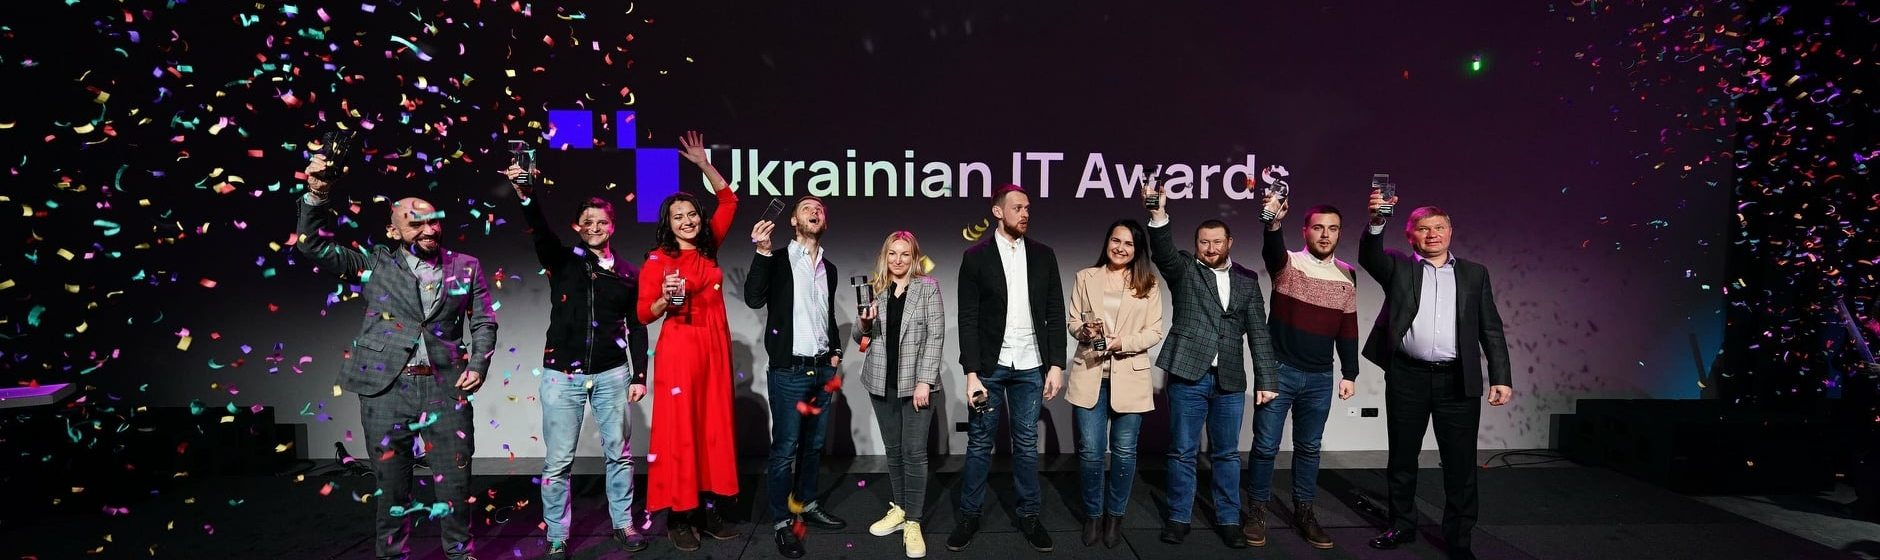 Церемония Ukrainian IT Awards 2020